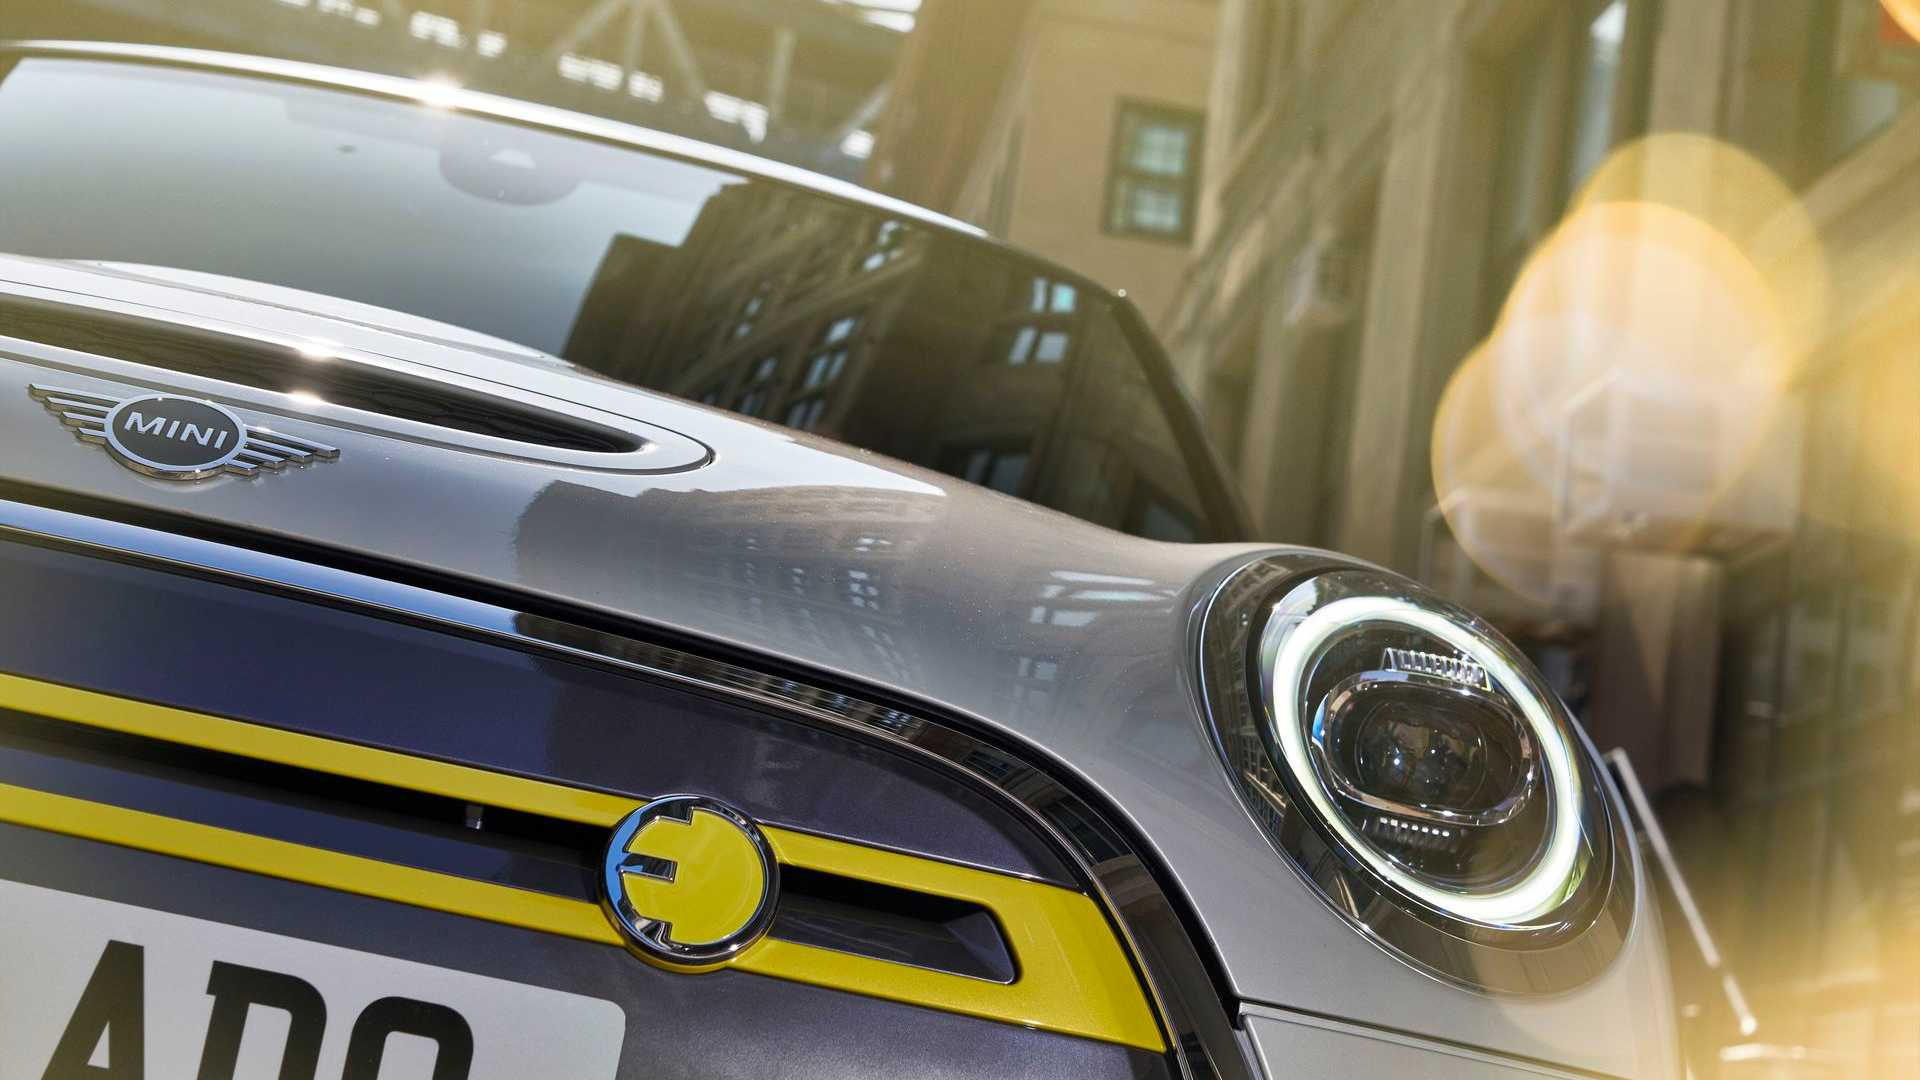 Rumors: Three Additional Electric MINI Vehicles Coming By 2023